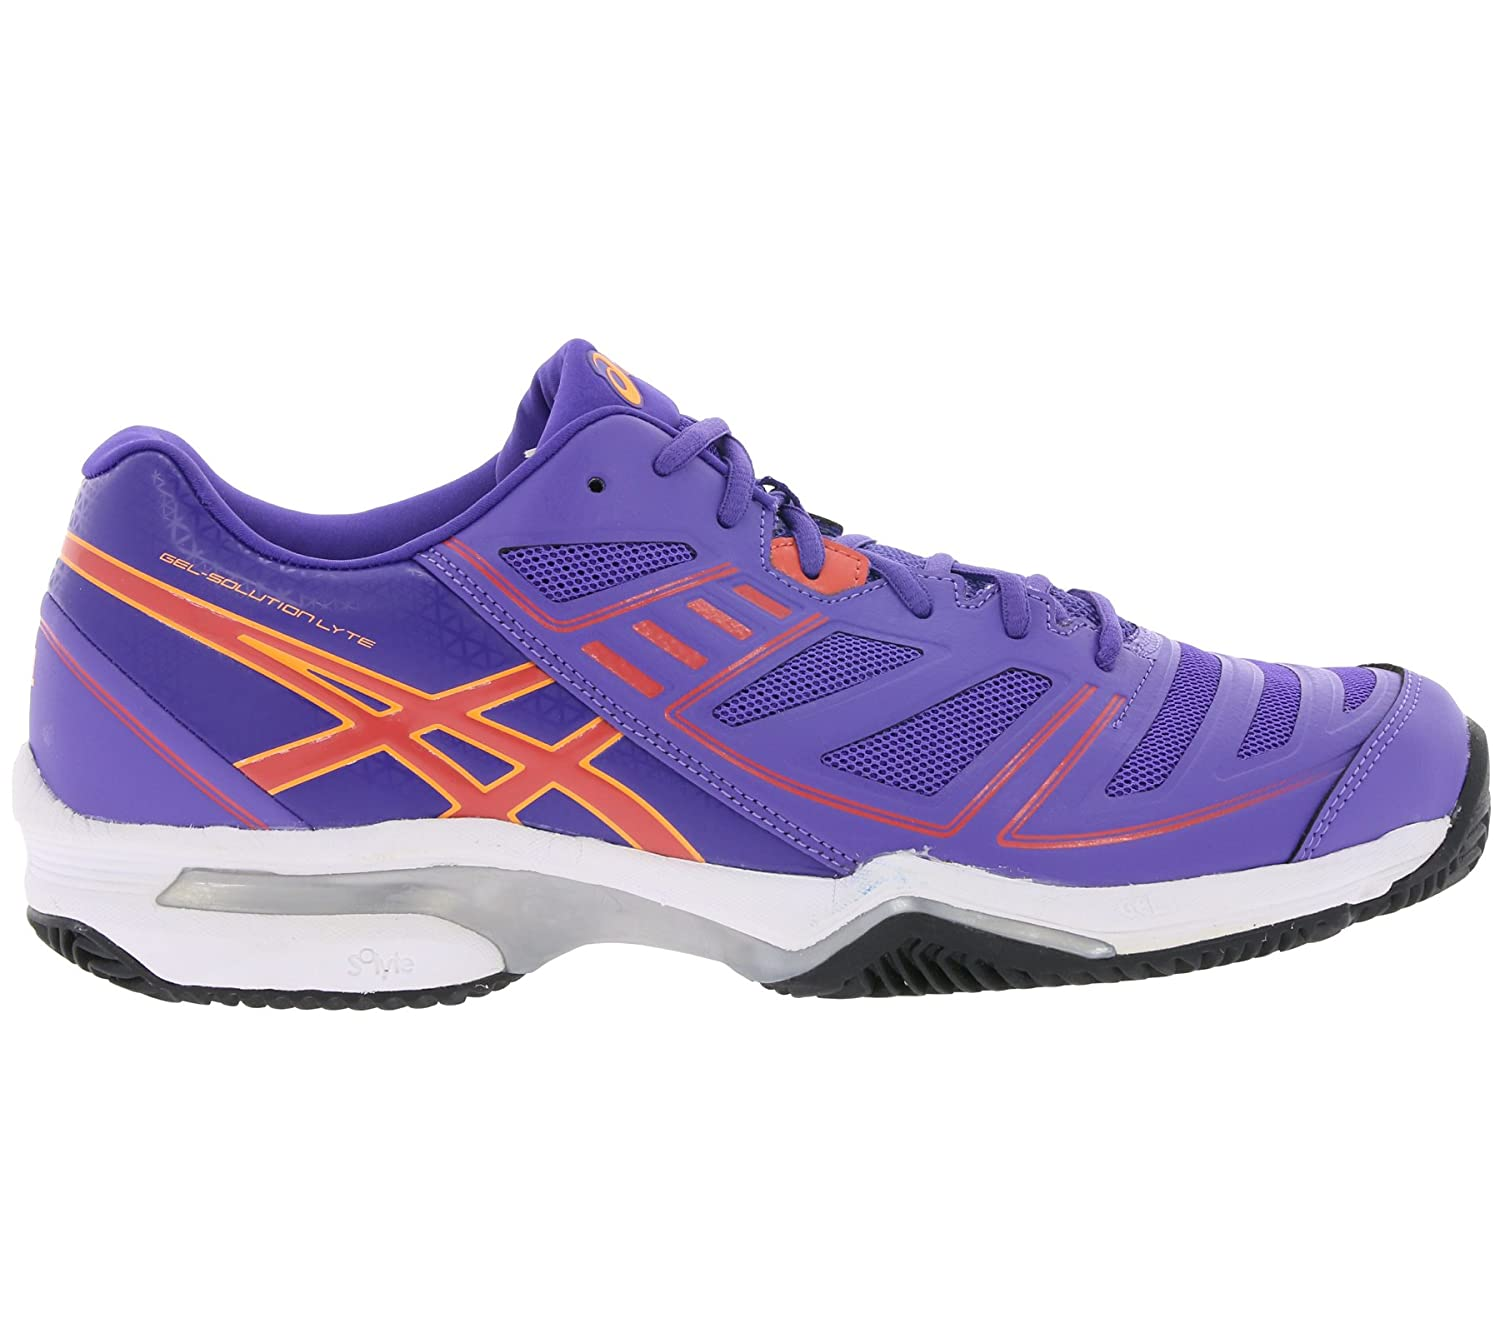 Womens Shoes Asics Gel Solution Lyte